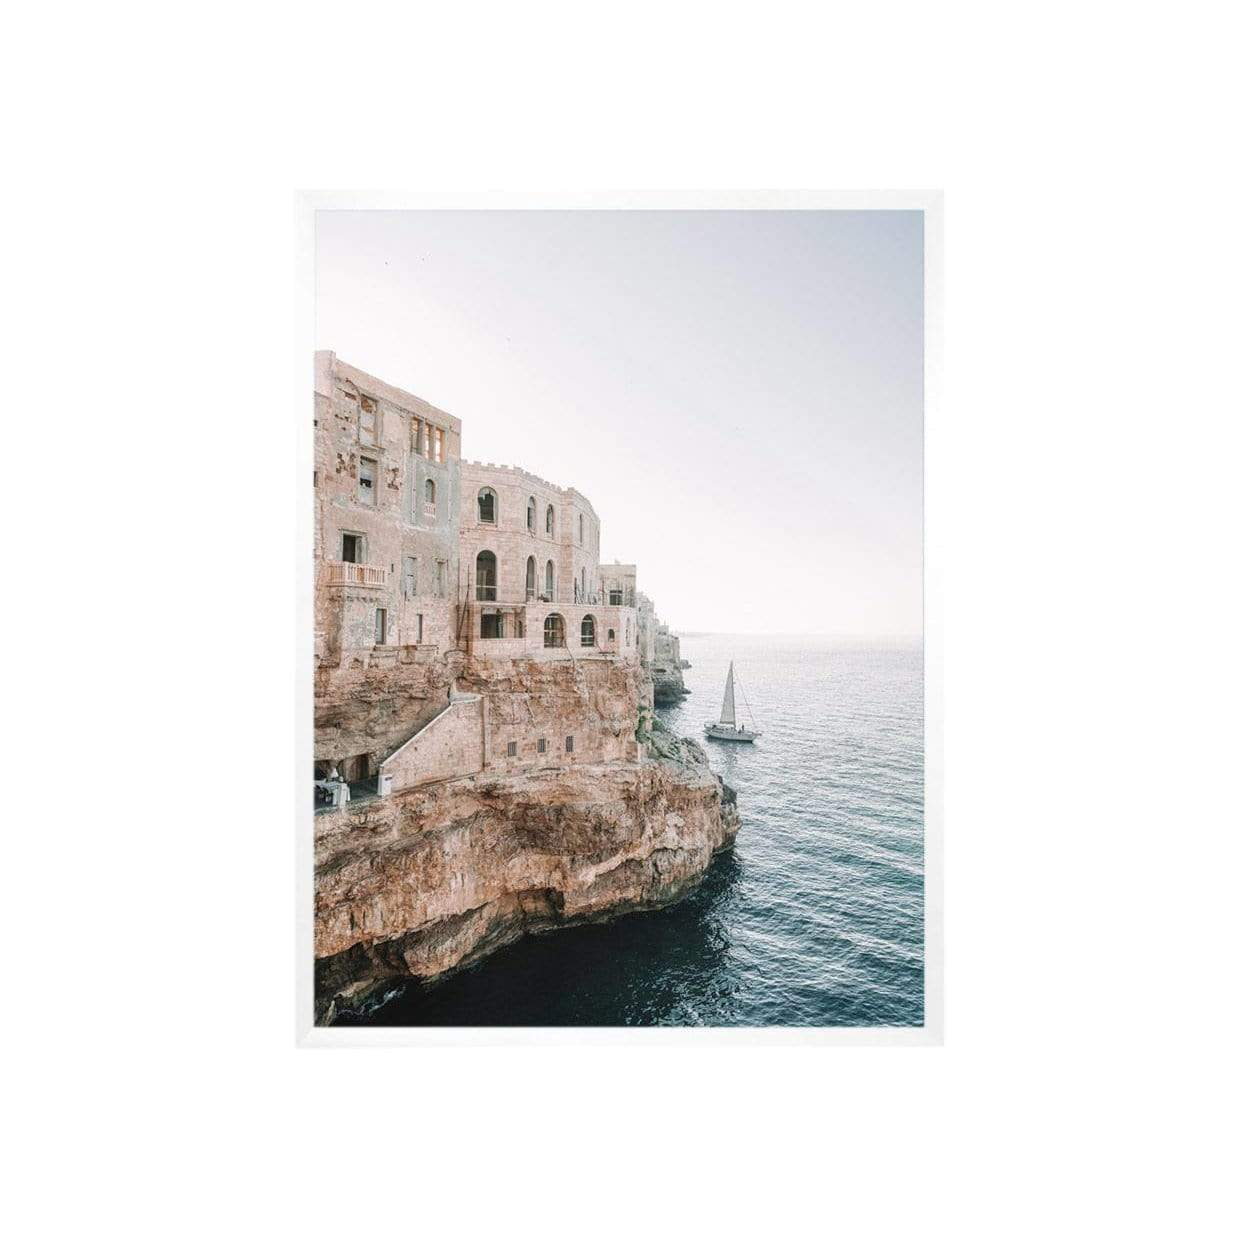 Carley Rudd Photography + Prints 8 x 10 / unframed Italian Cliffside Print